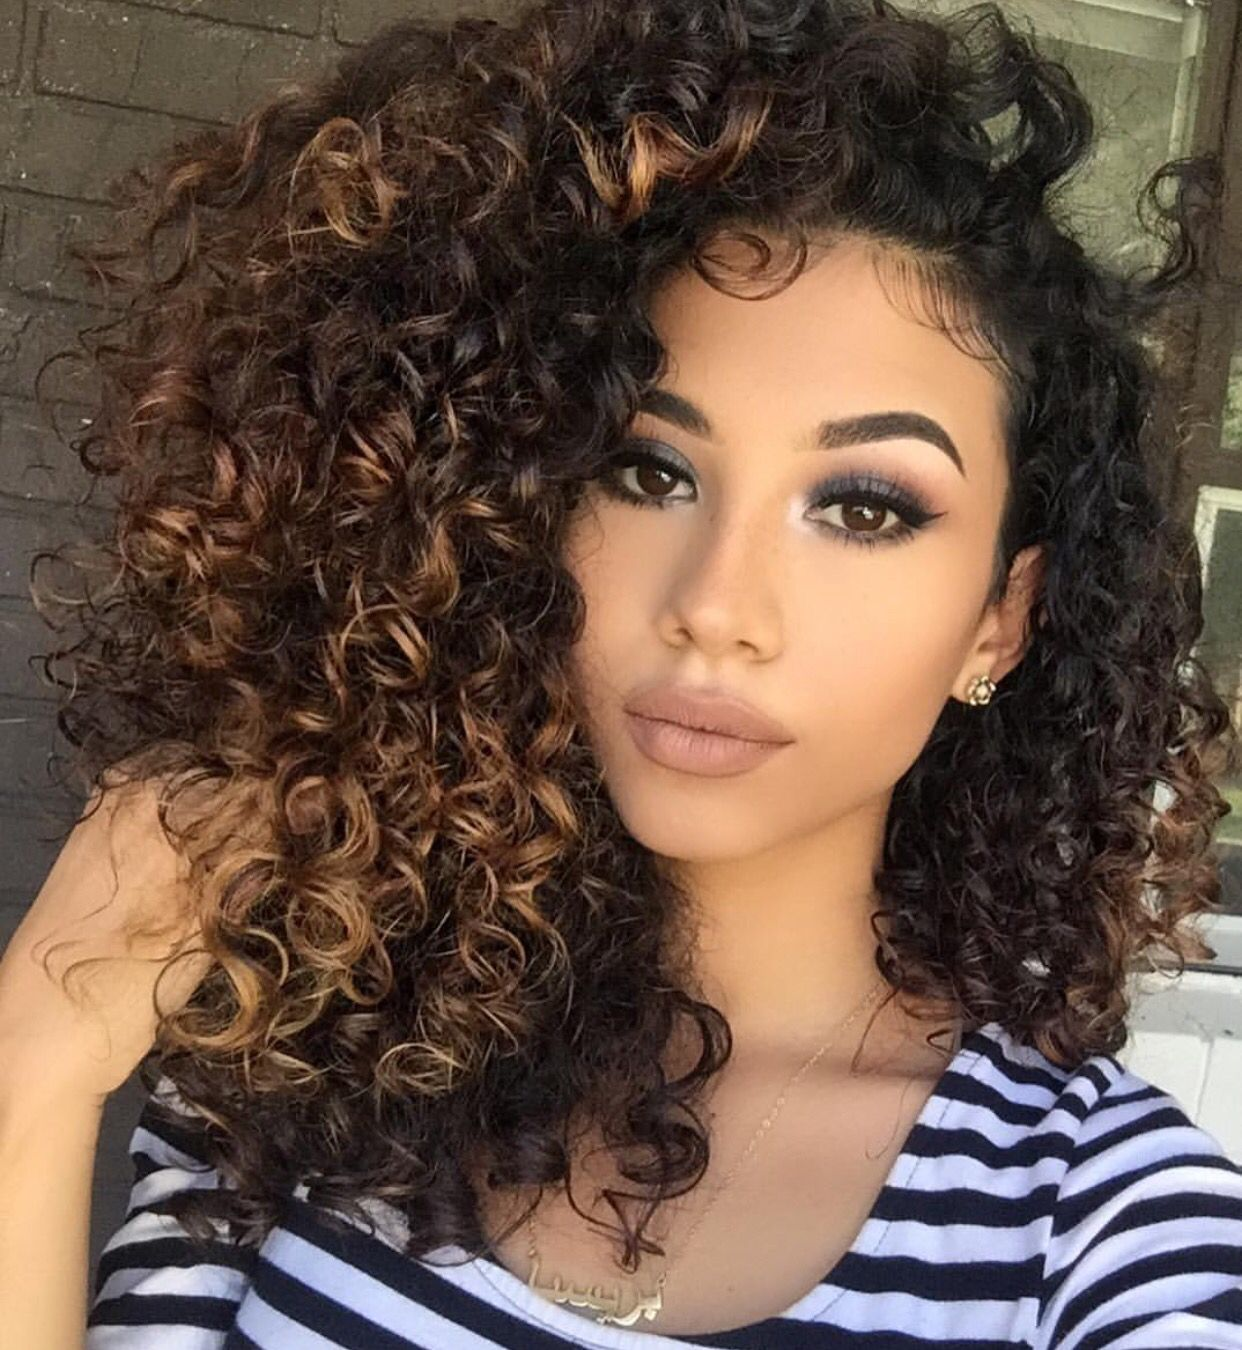 14 Naturally Stunning Mixed Race People In 2020 Curly Hair Styles Naturally Curly Hair Styles Hair Styles